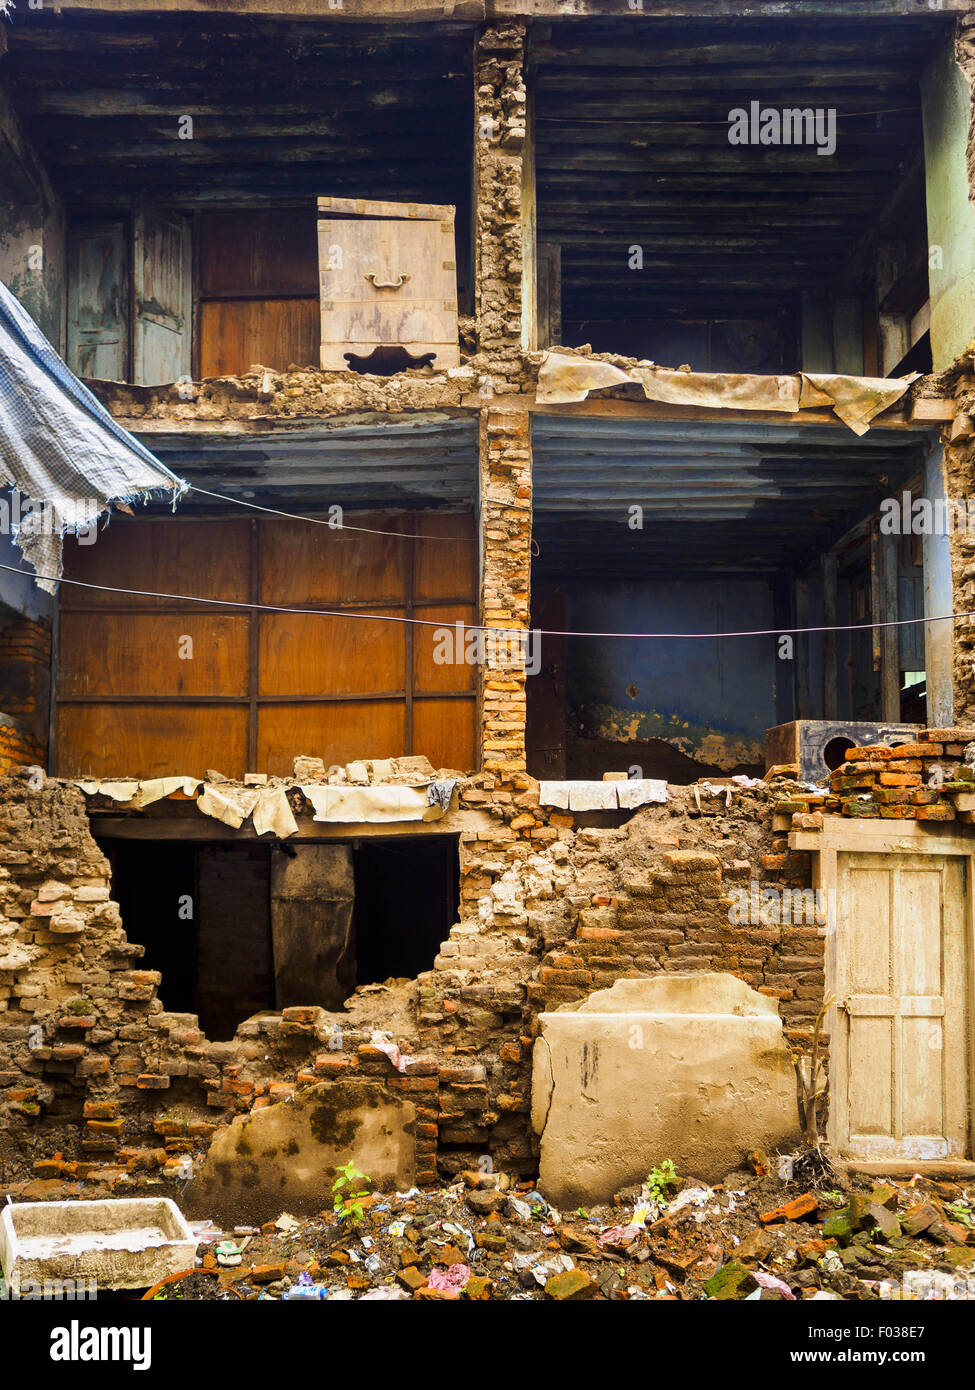 Kathmandu, Nepal. 6th Aug, 2015. The exterior wall of this home in the Thamel section of Kathmandu collapsed in - Stock Image